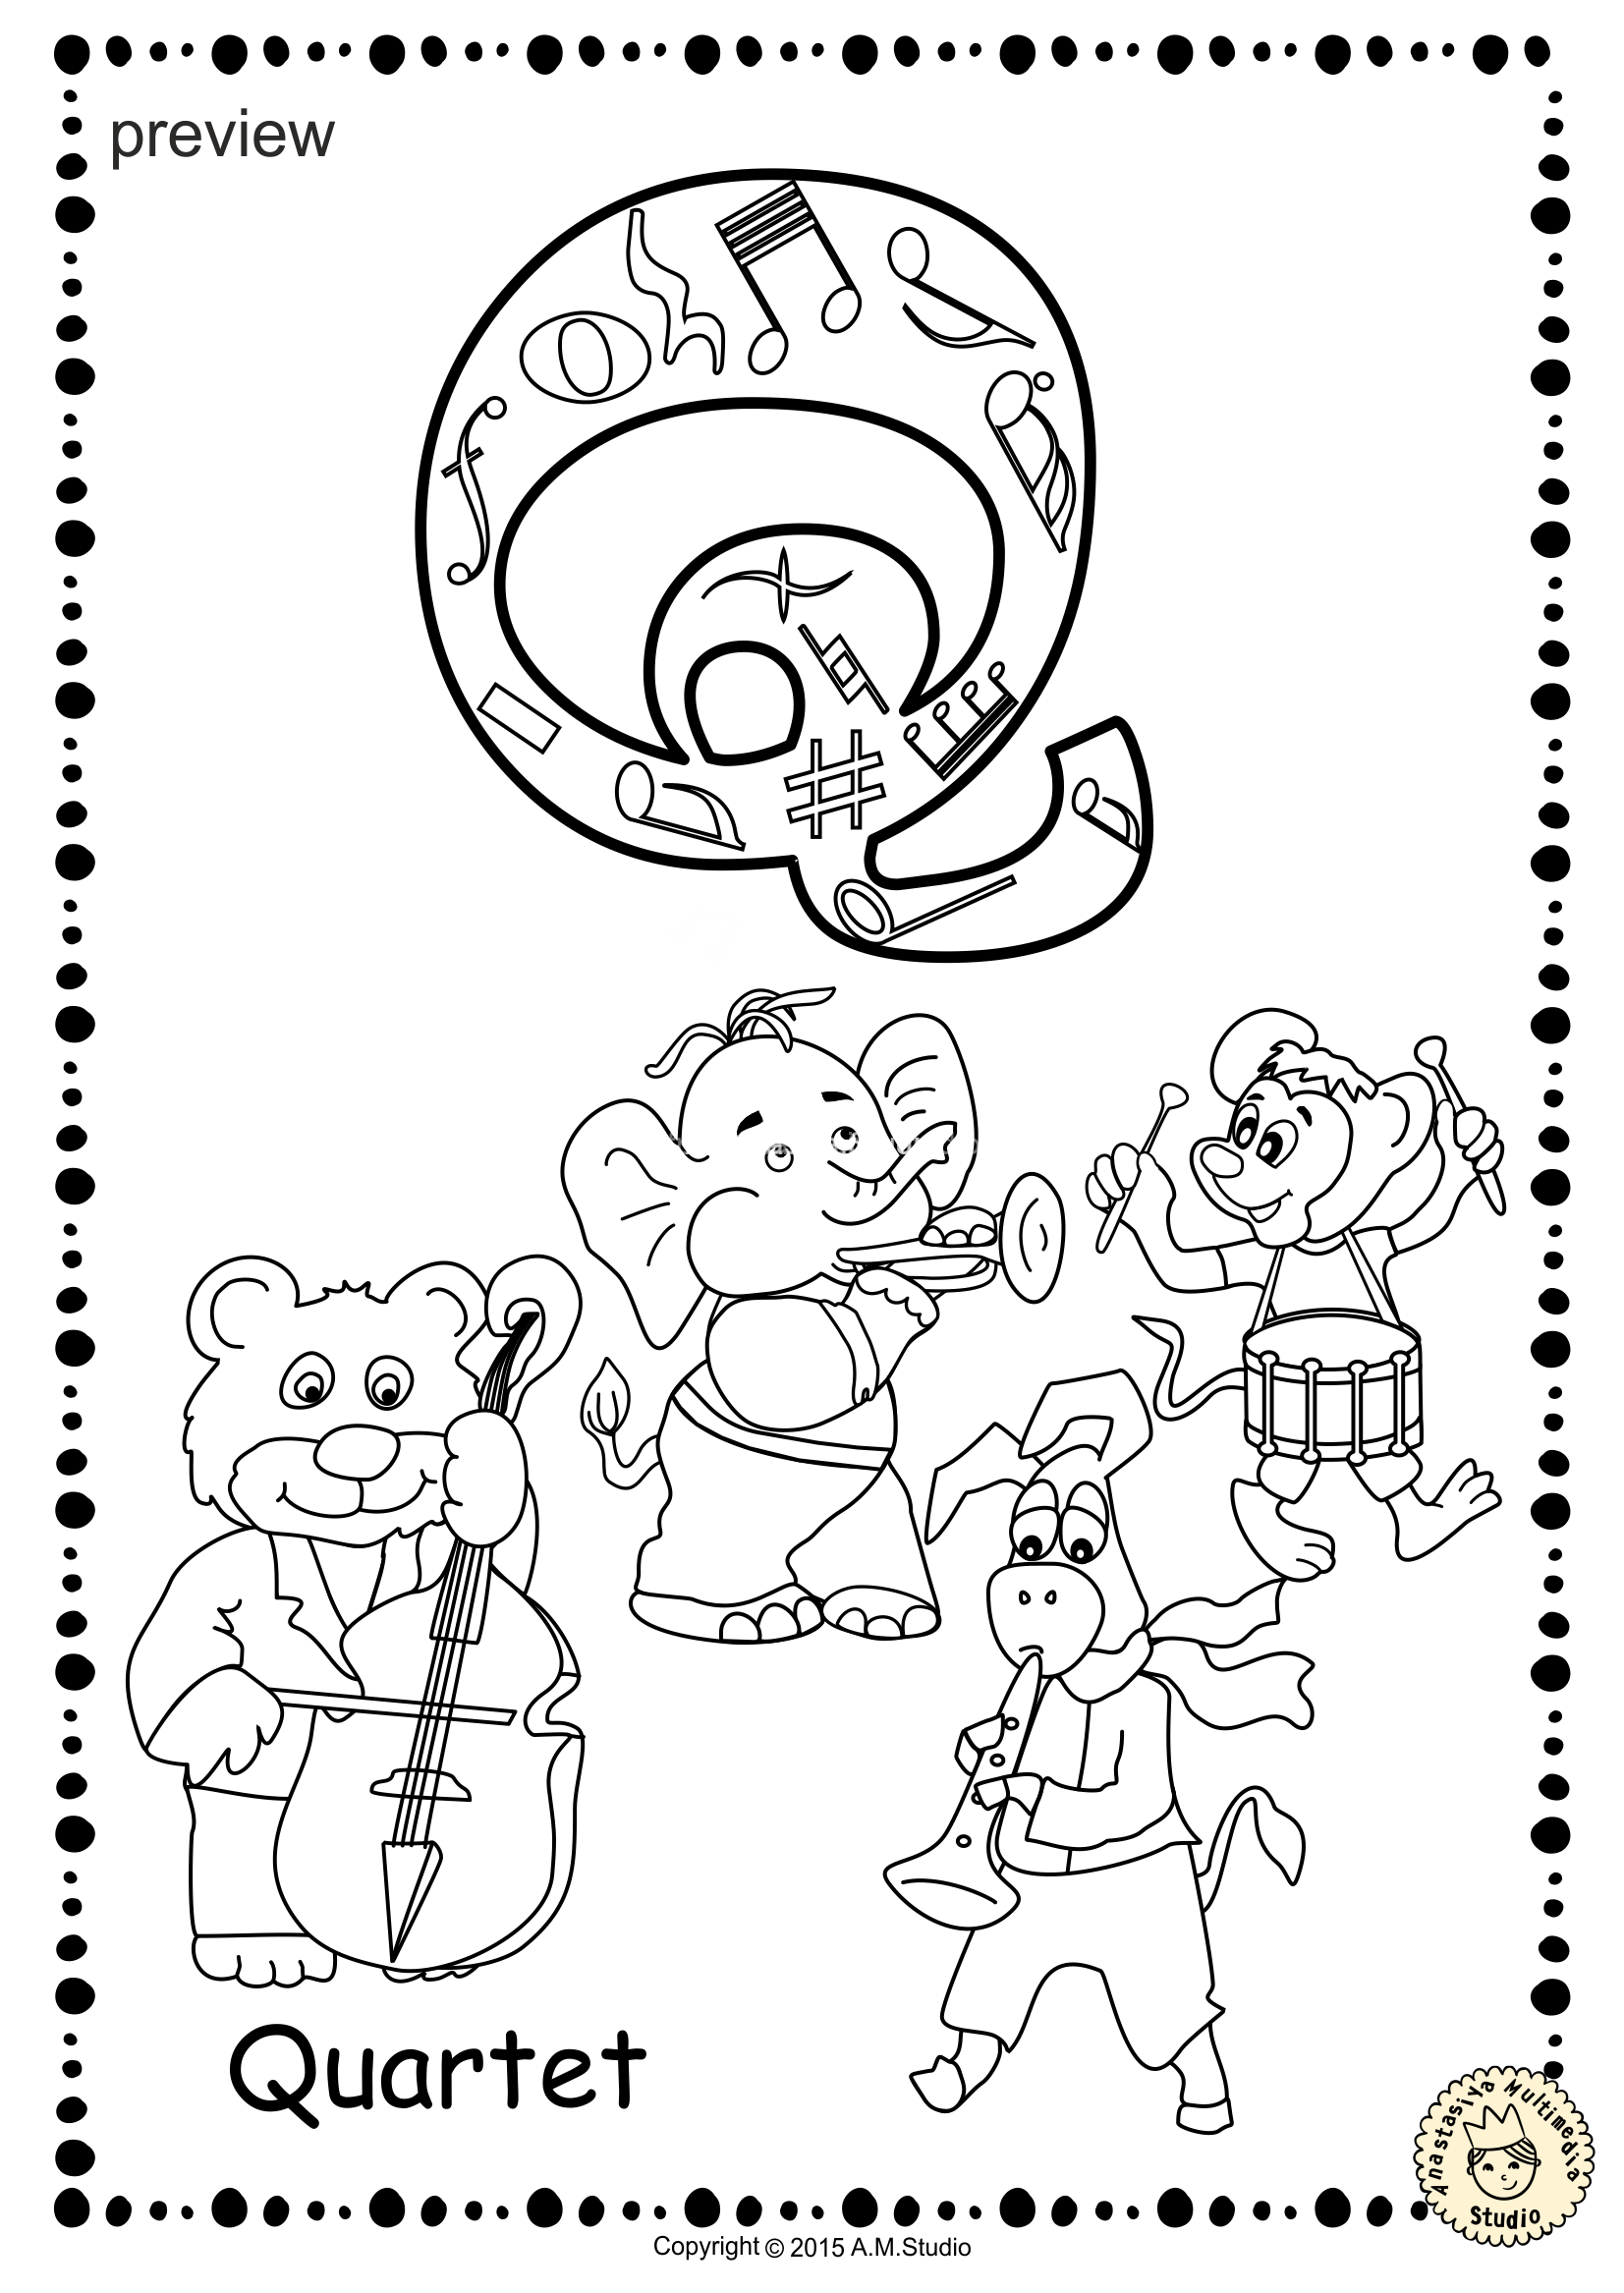 music note coloring pages pdf music viola and bow coloring page viola viola coloring note music pages pdf coloring